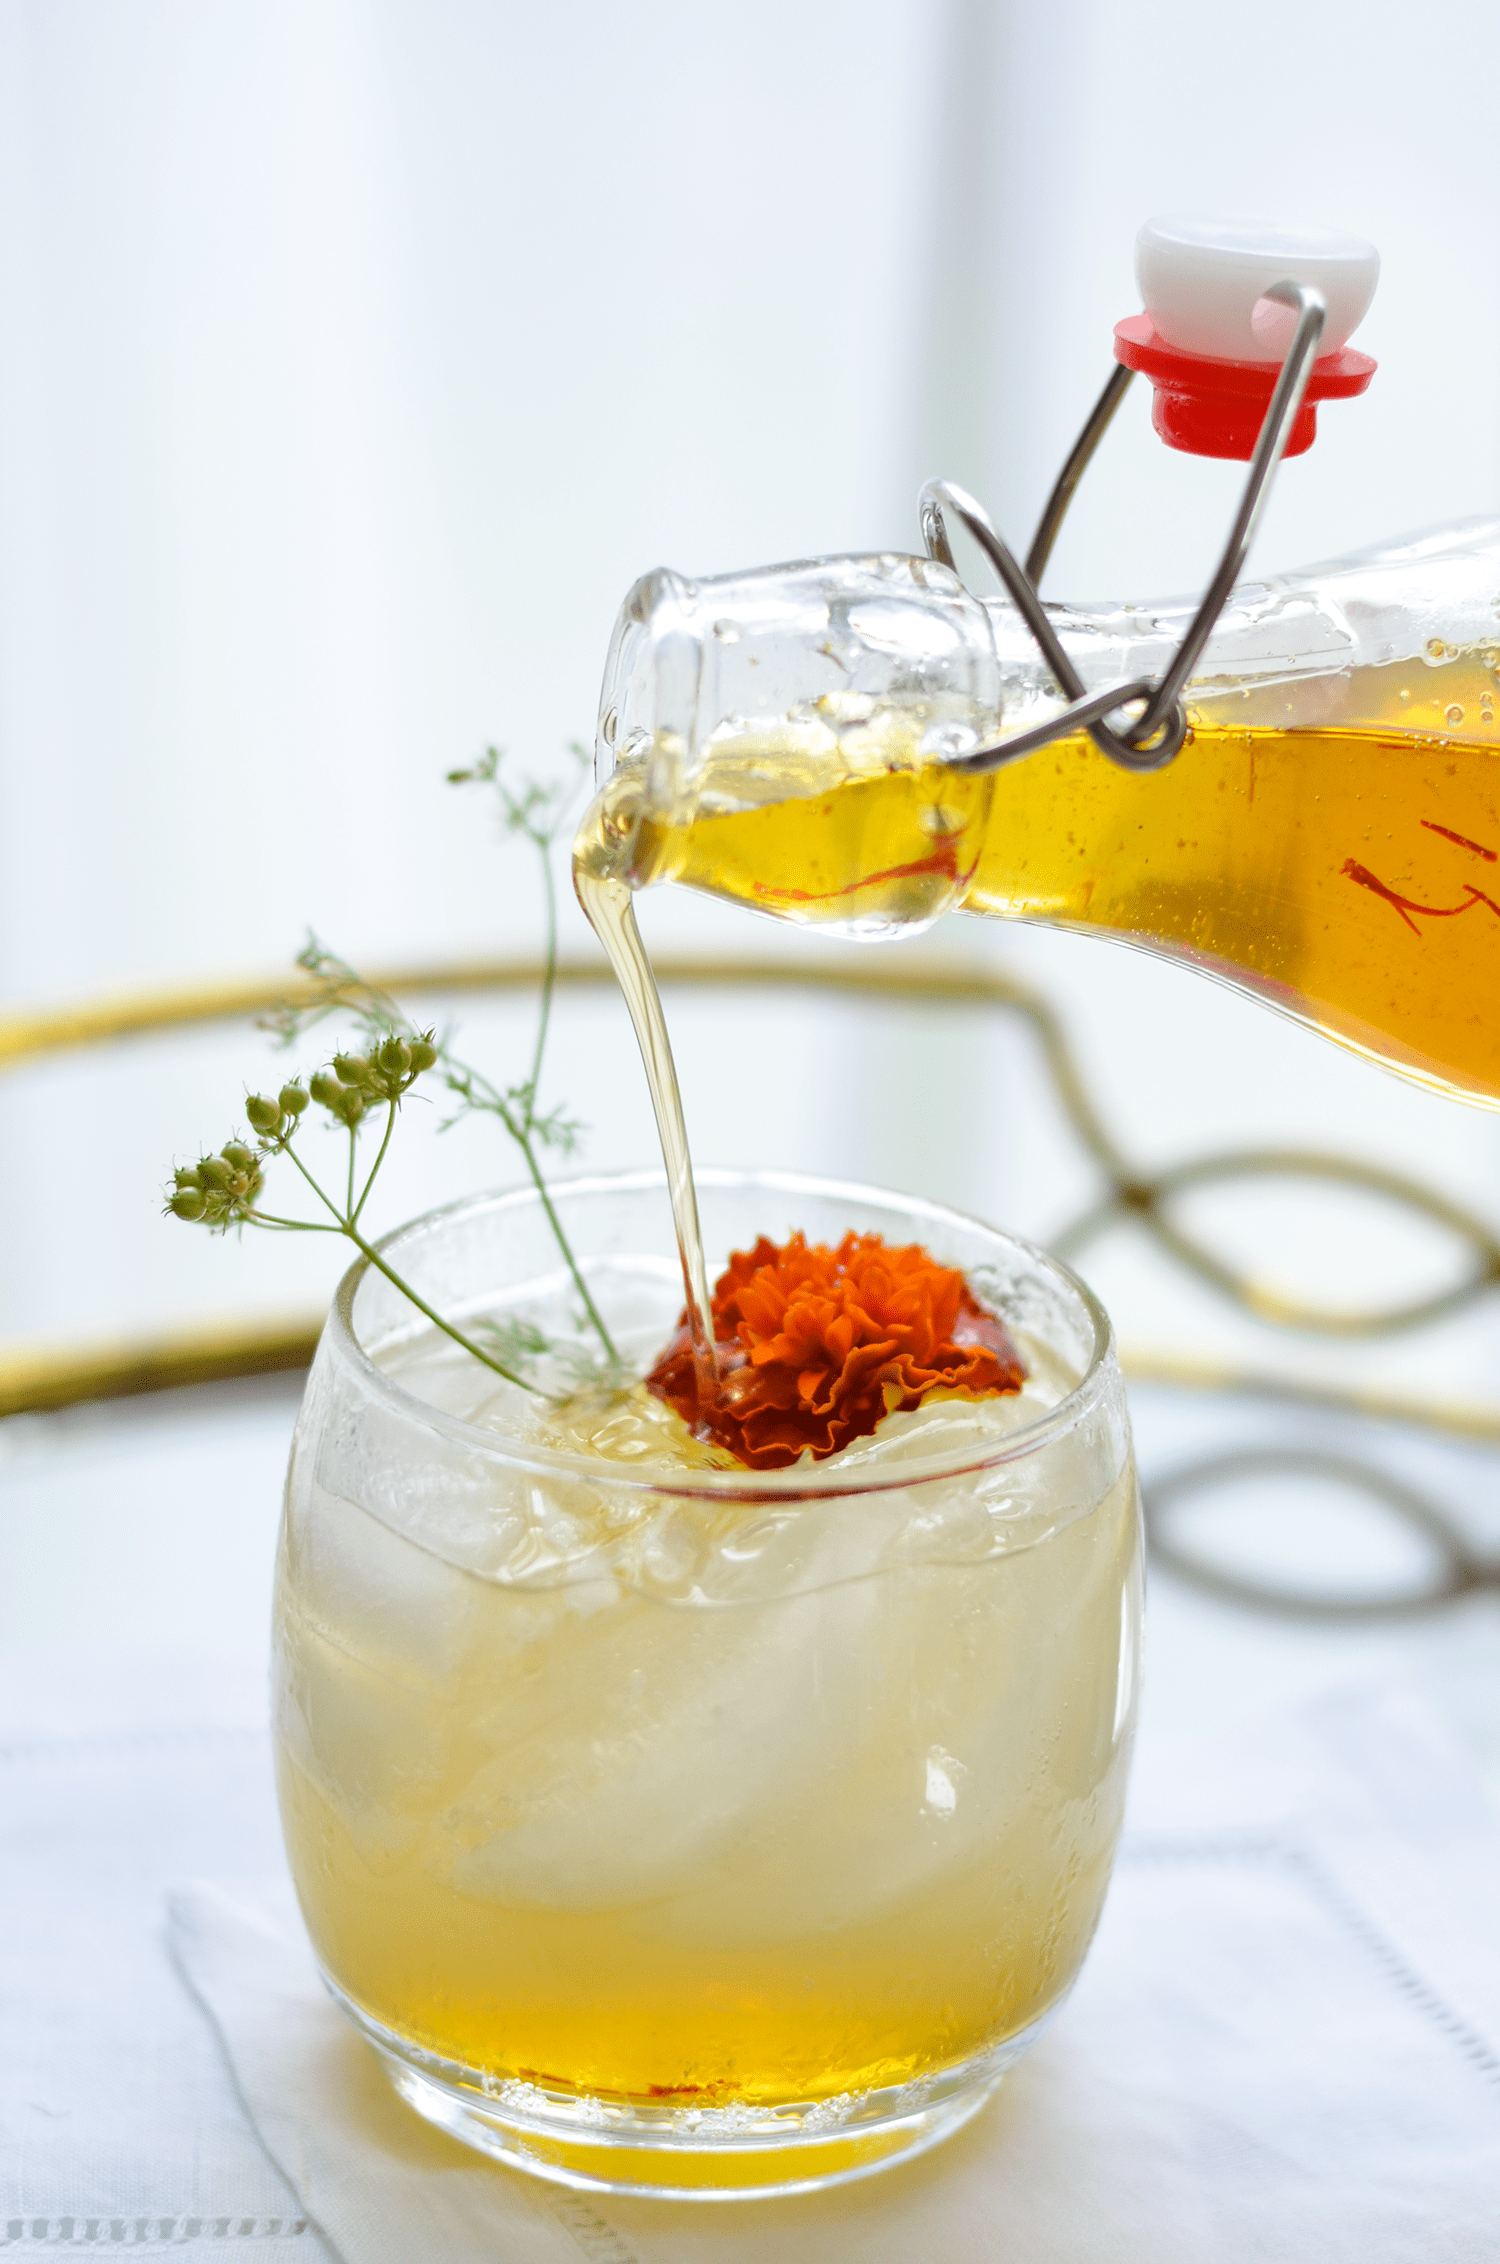 Flavored Simple Syrups | A Beautiful Mess   Styling and photography by Mary Helen Leonard